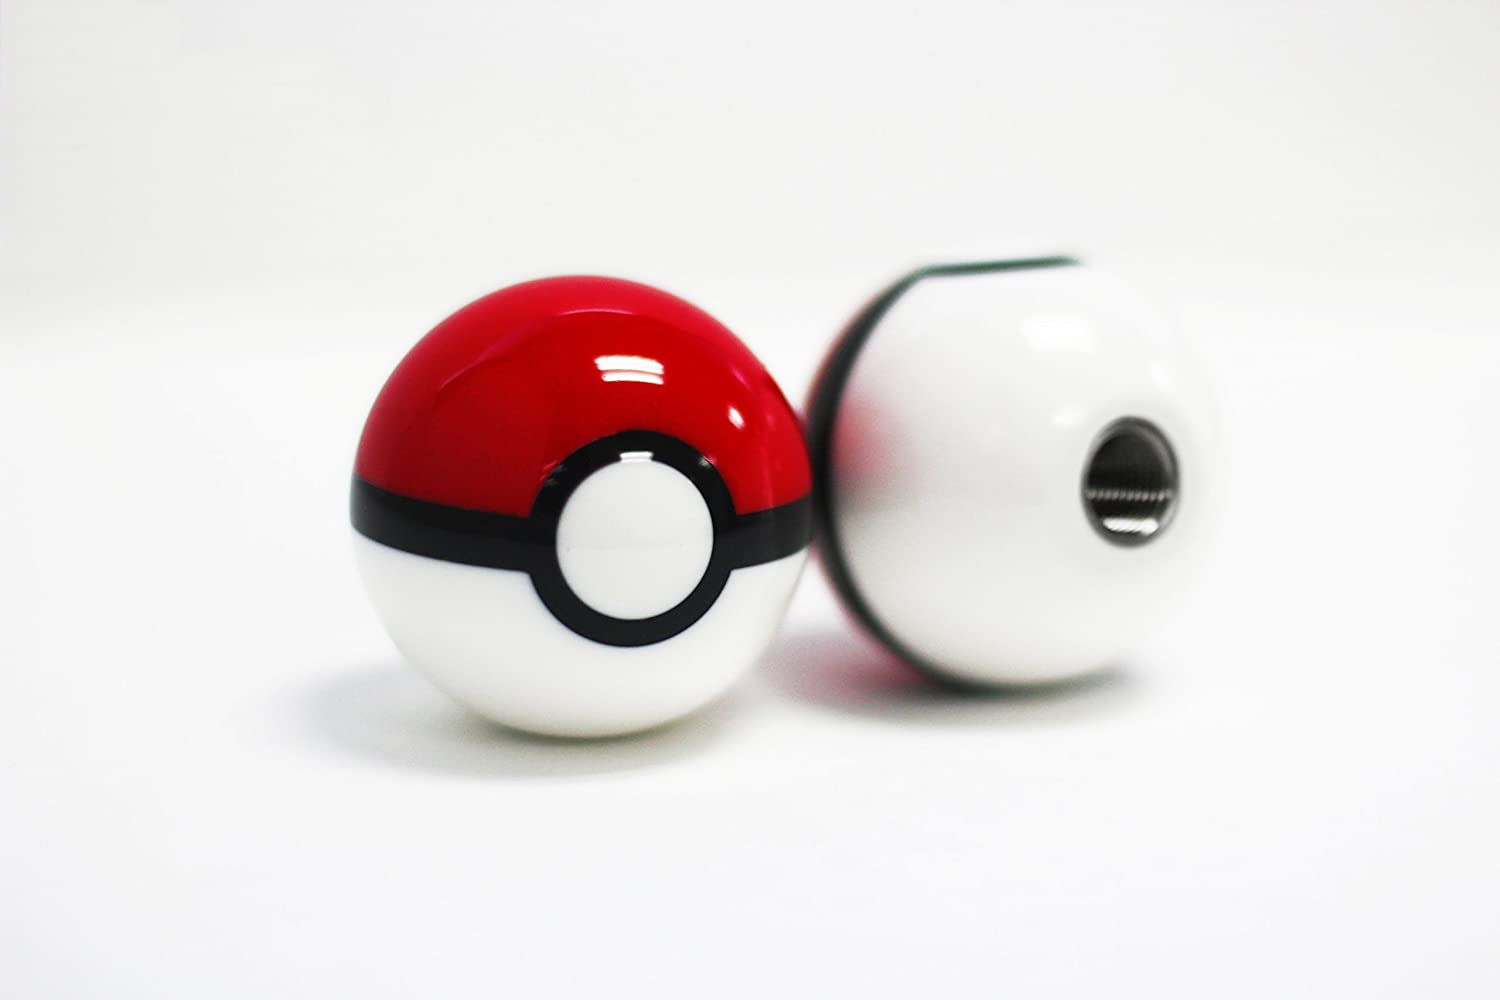 Kei Project Pokemon Pokeball Round Shift Knob Available in 8x1.25 10x1.25 10x1.50 12x1.25 (10x1.25) PB-25